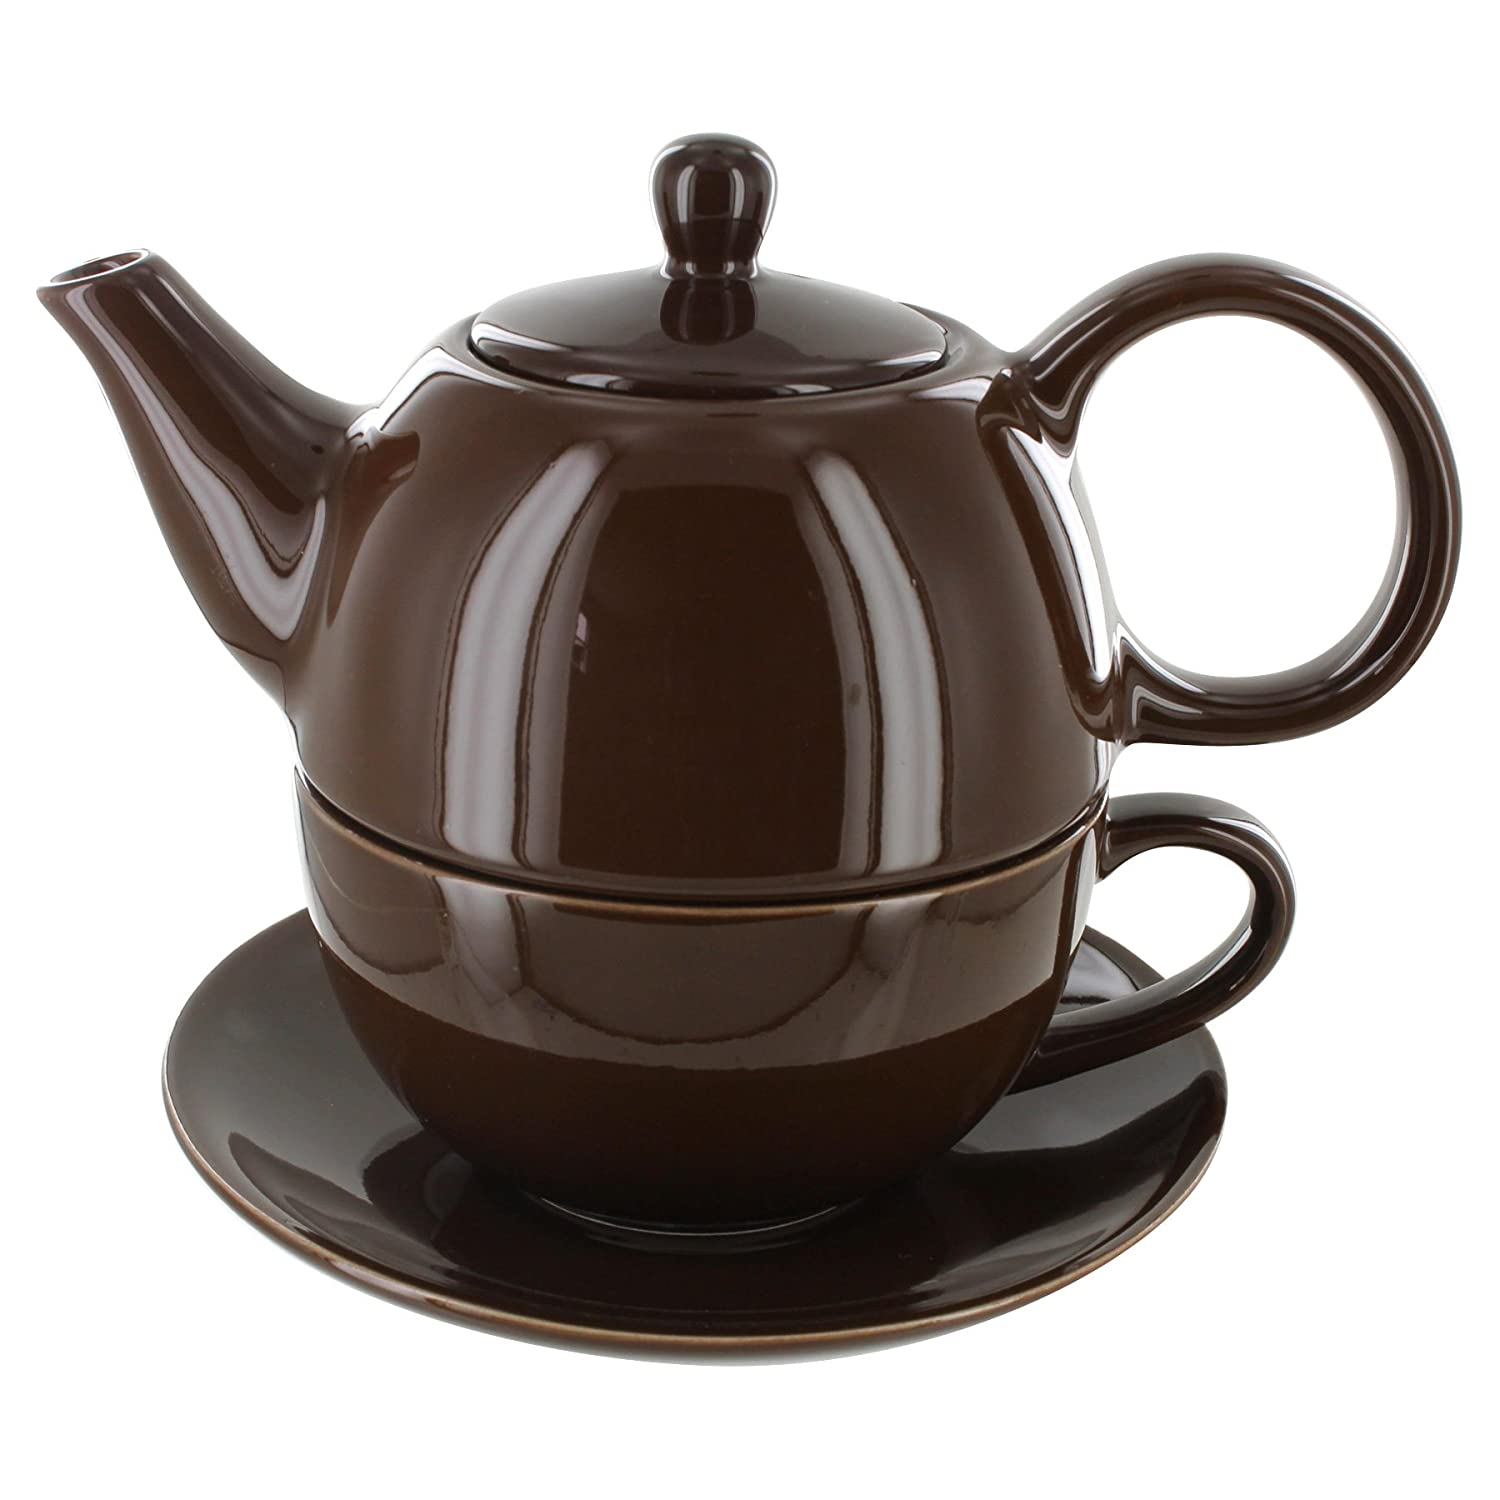 Tea for One Brown Gloss Finish - English Tea Store Brand Online Stores Inc.